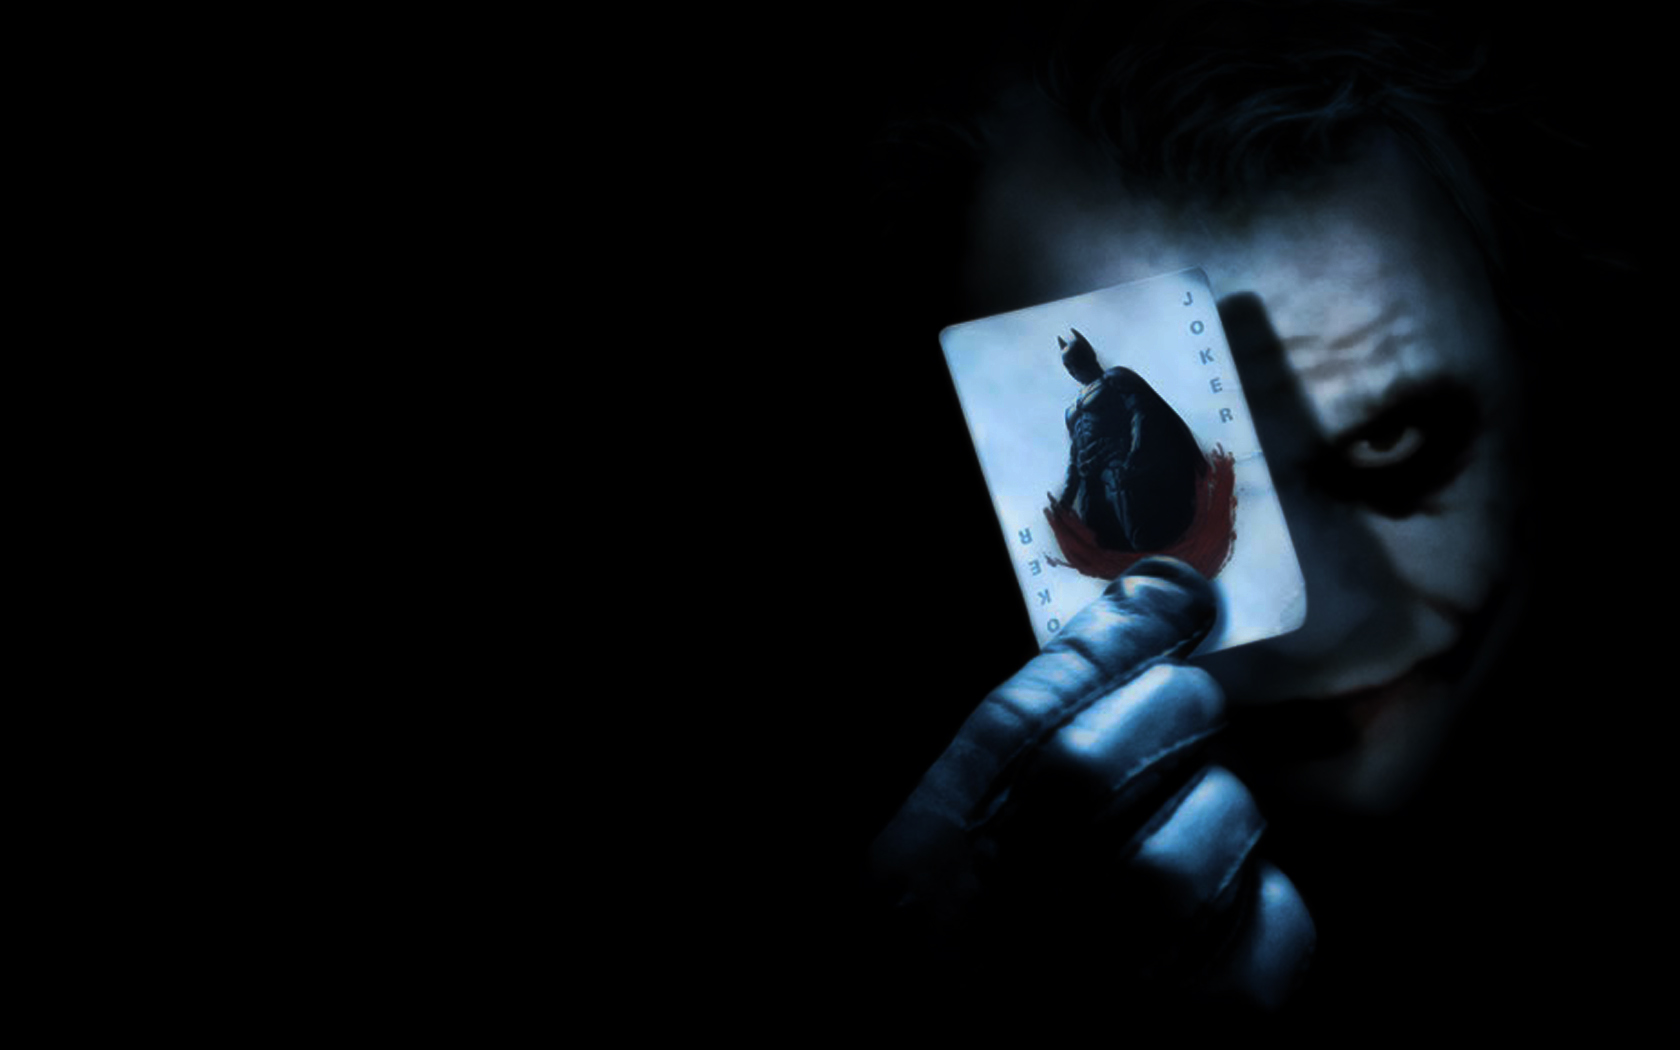 Awesome Batman wallpaper Batman wallpapers 1680x1050